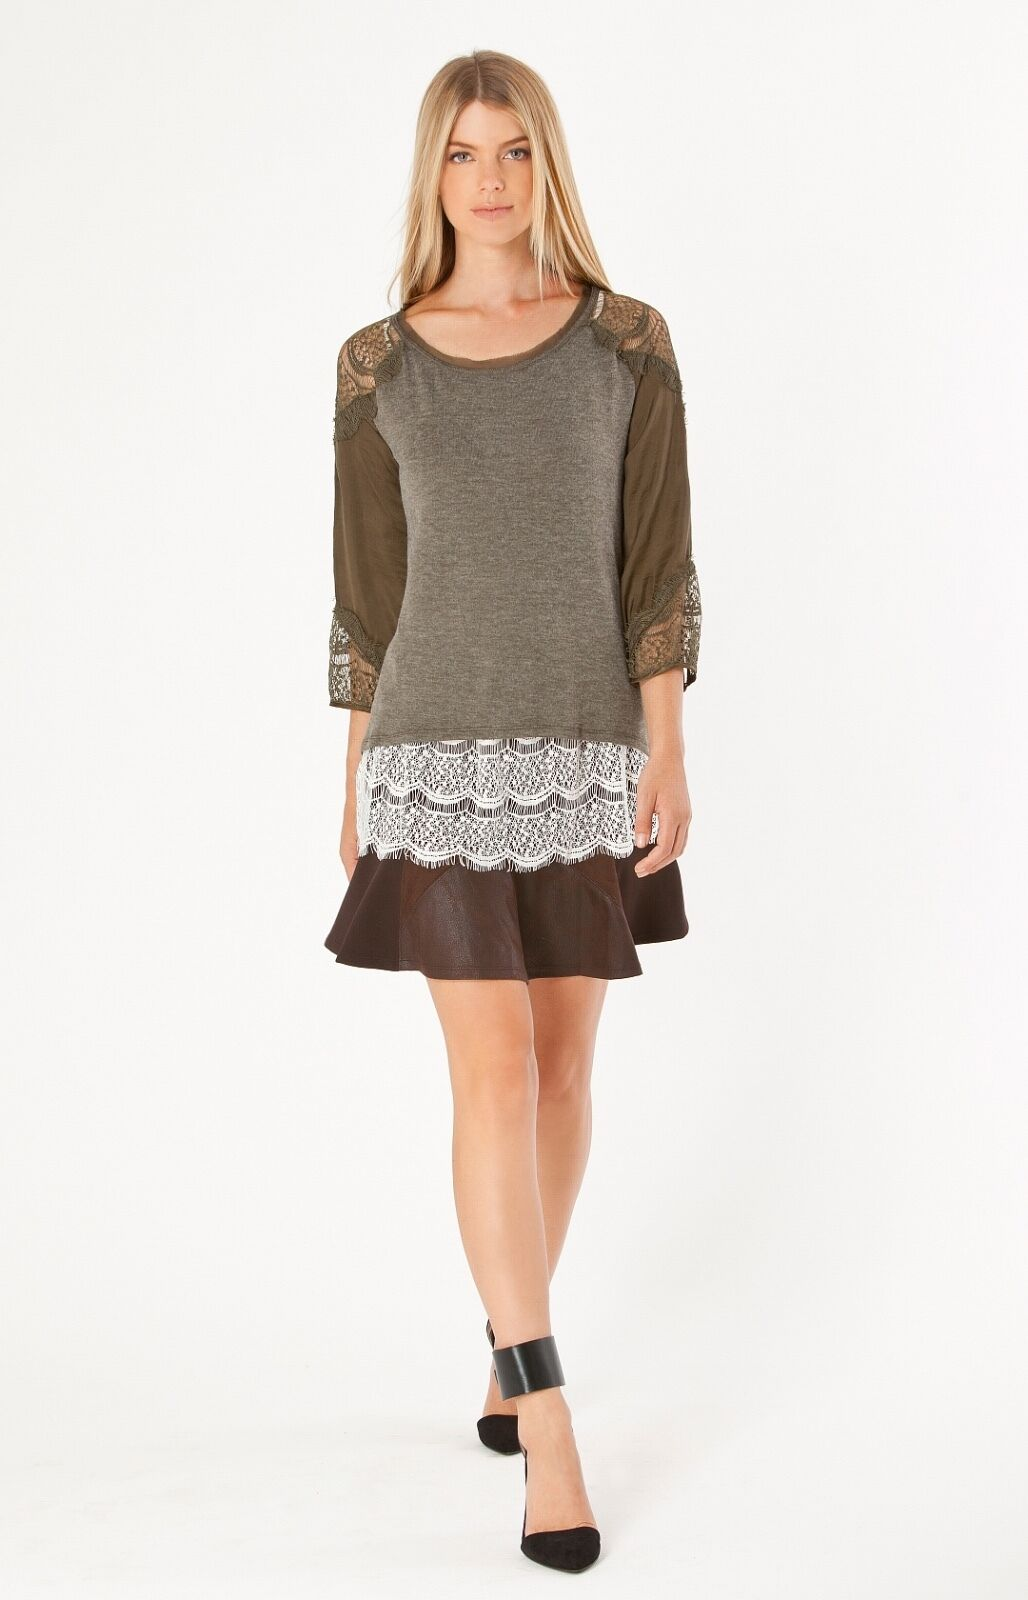 Hale Bob Mixed Media Fit And Flare Mini Skirt   Ultra Suede XS S NWT 4TFA4897